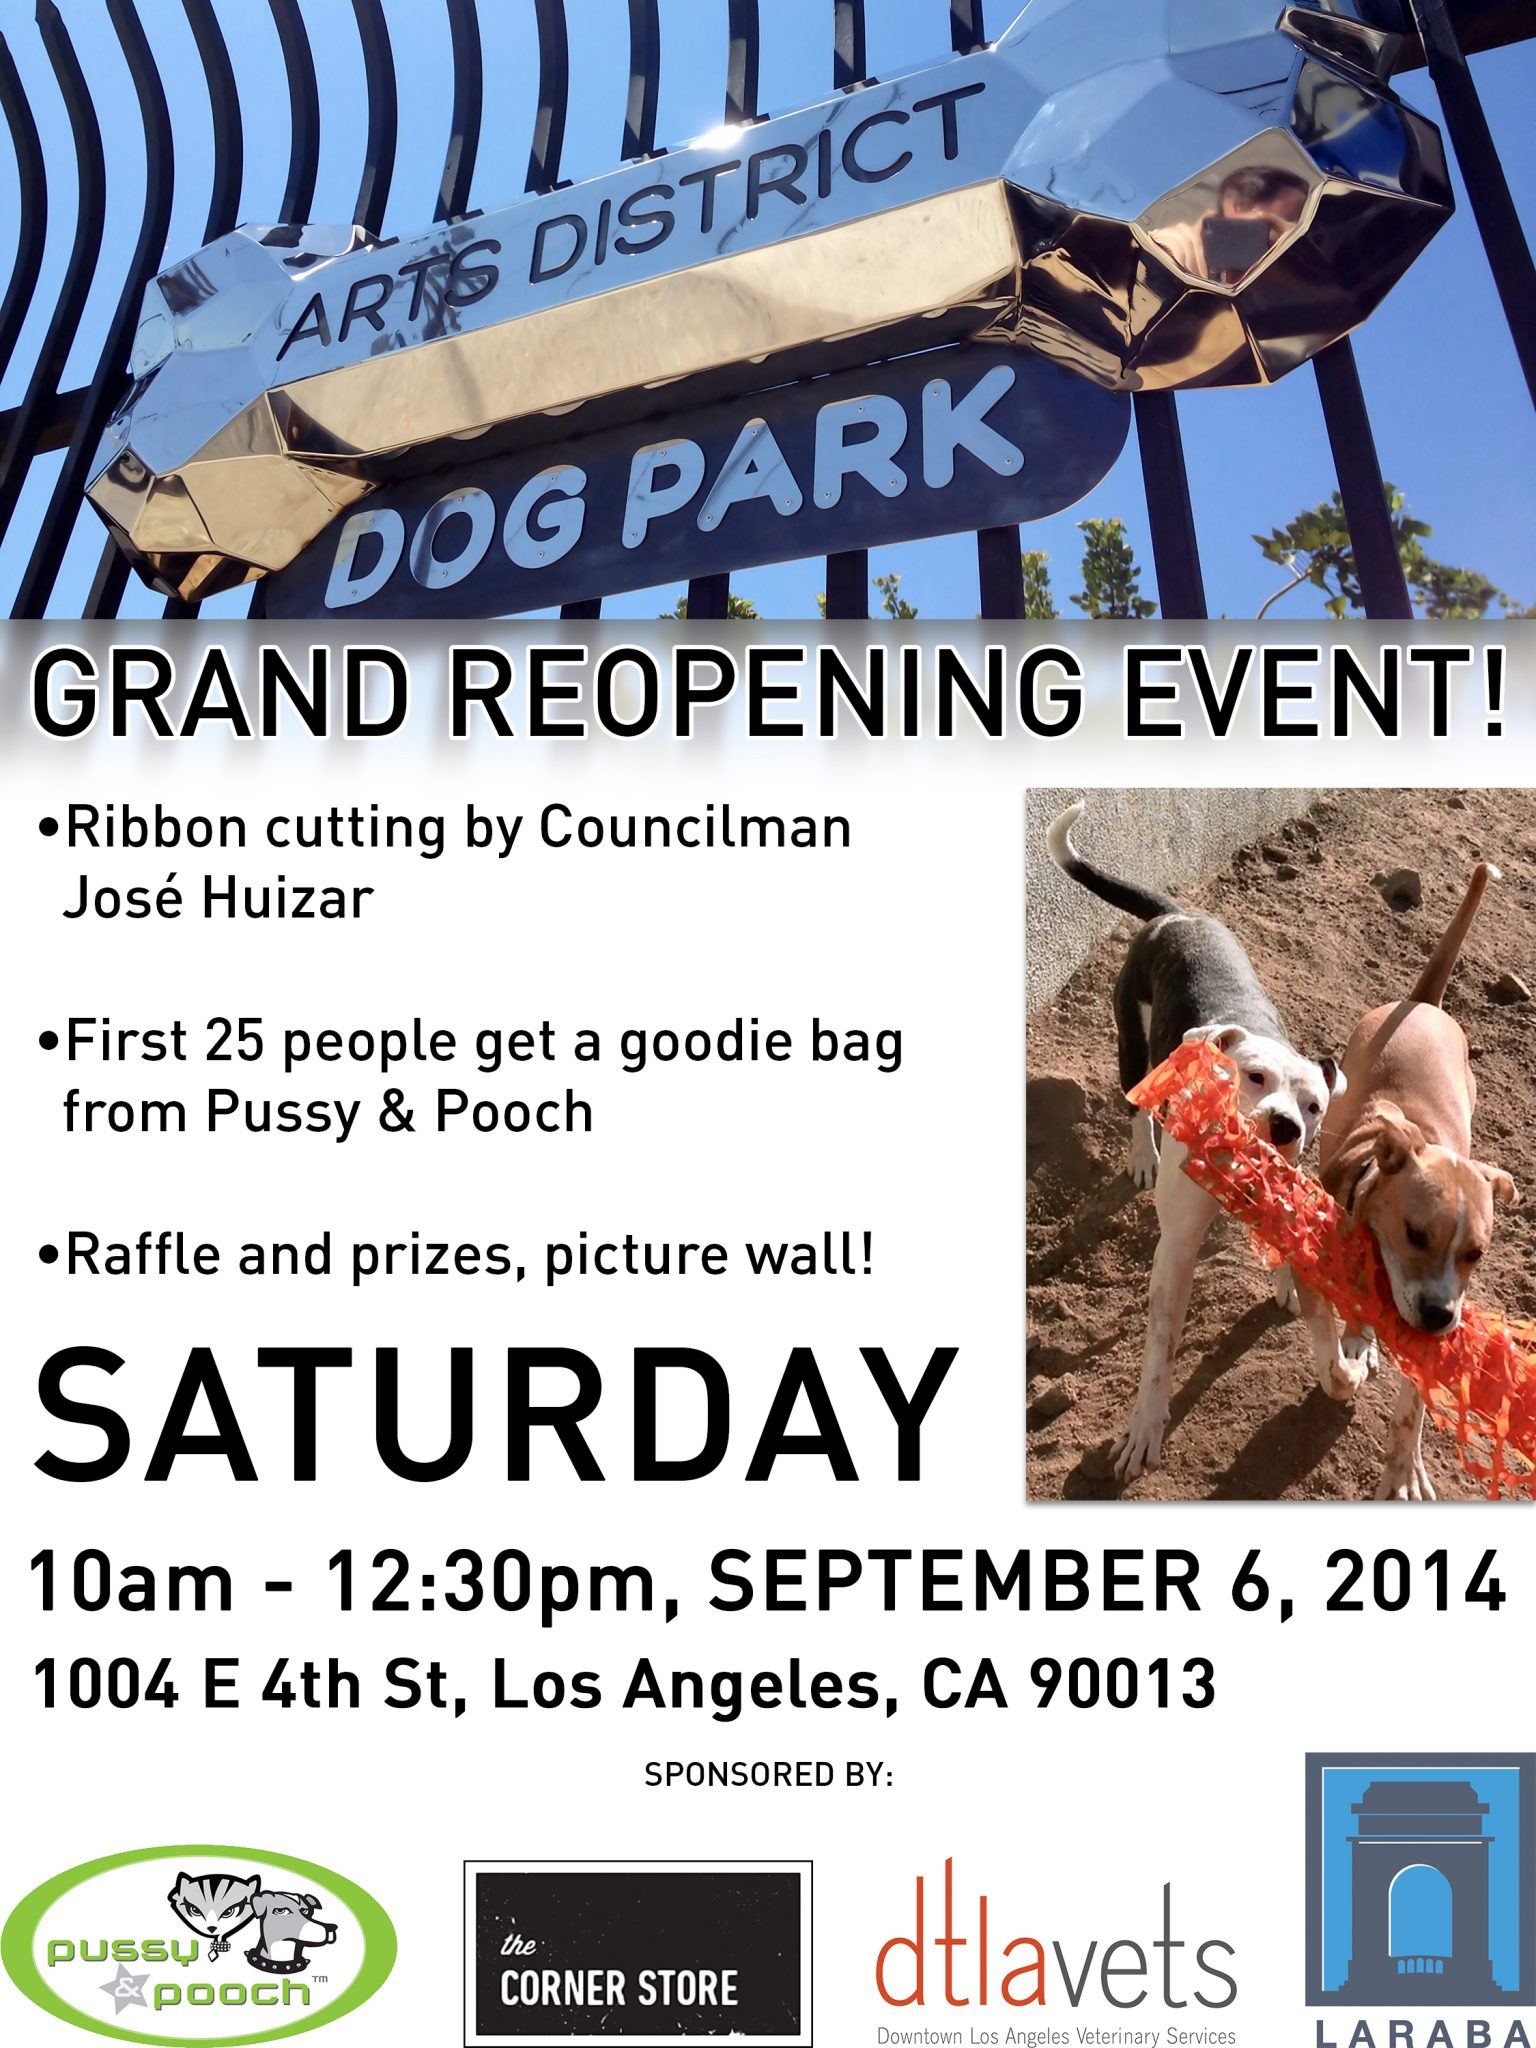 Arts District Dog Park Grand Re-Opening - August 30, 2014